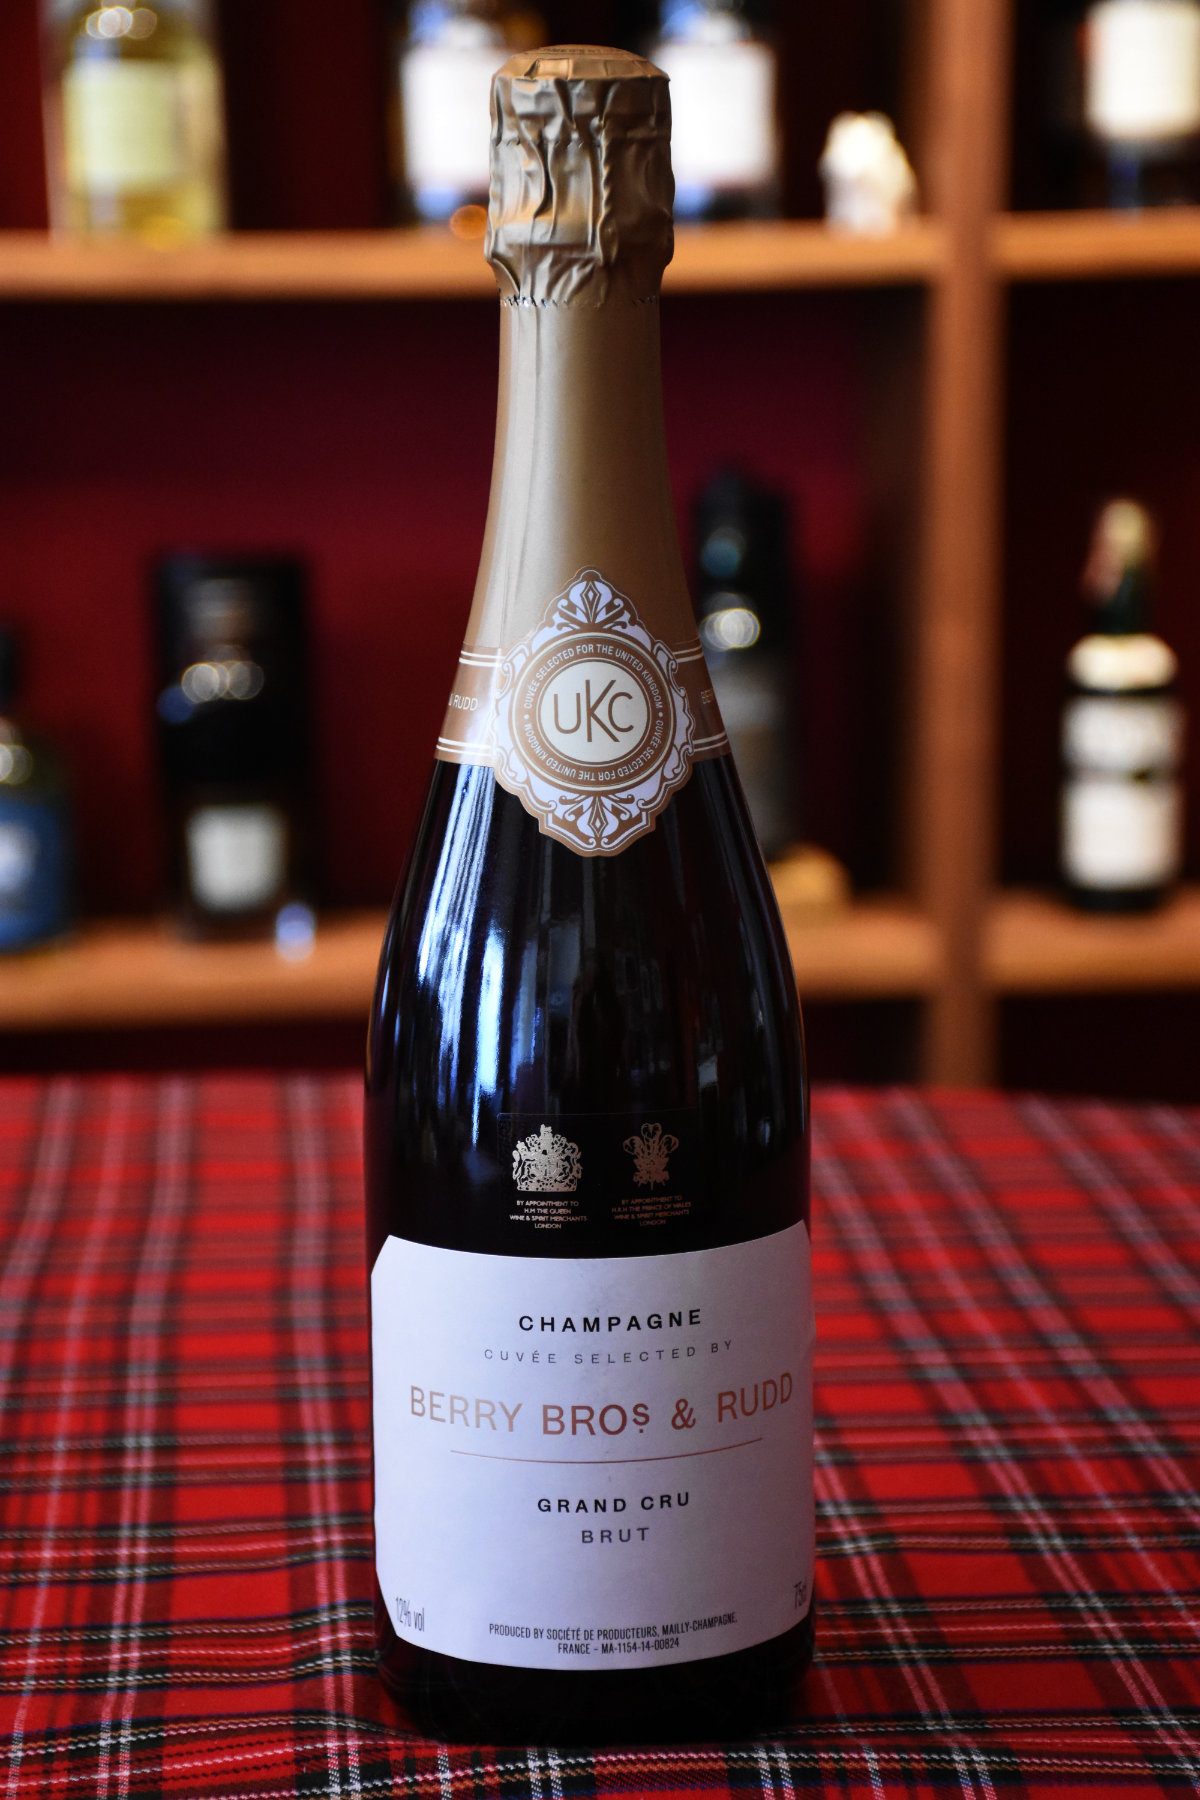 Berry Bros. & Rudd Champagne Grand Cru by Mailly, Grand Champagne, 12 %